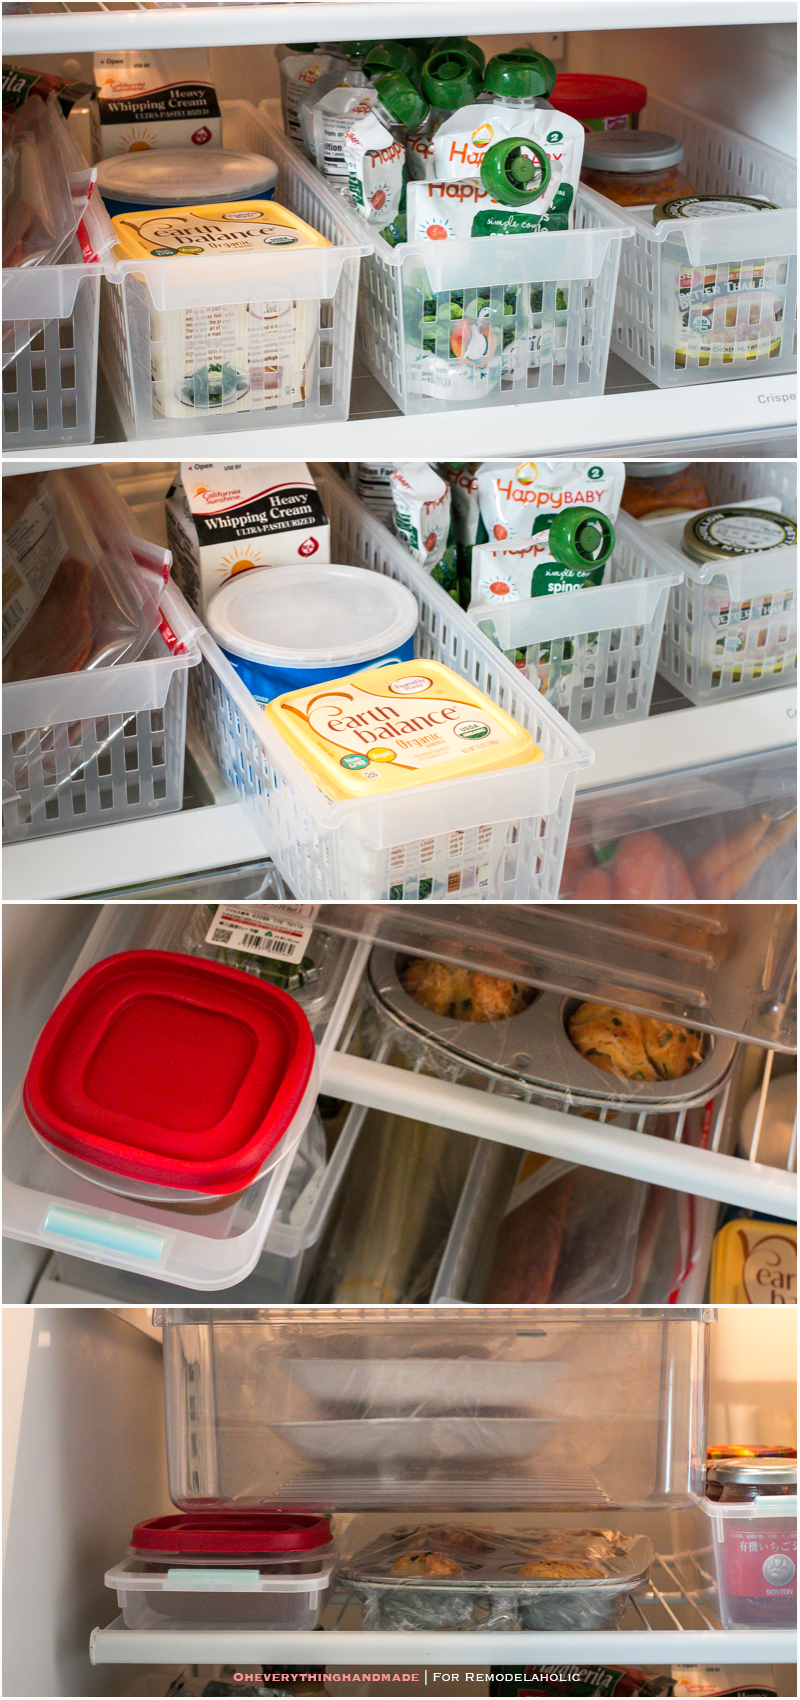 Fridge Organizing Tips- Use all spaces possible